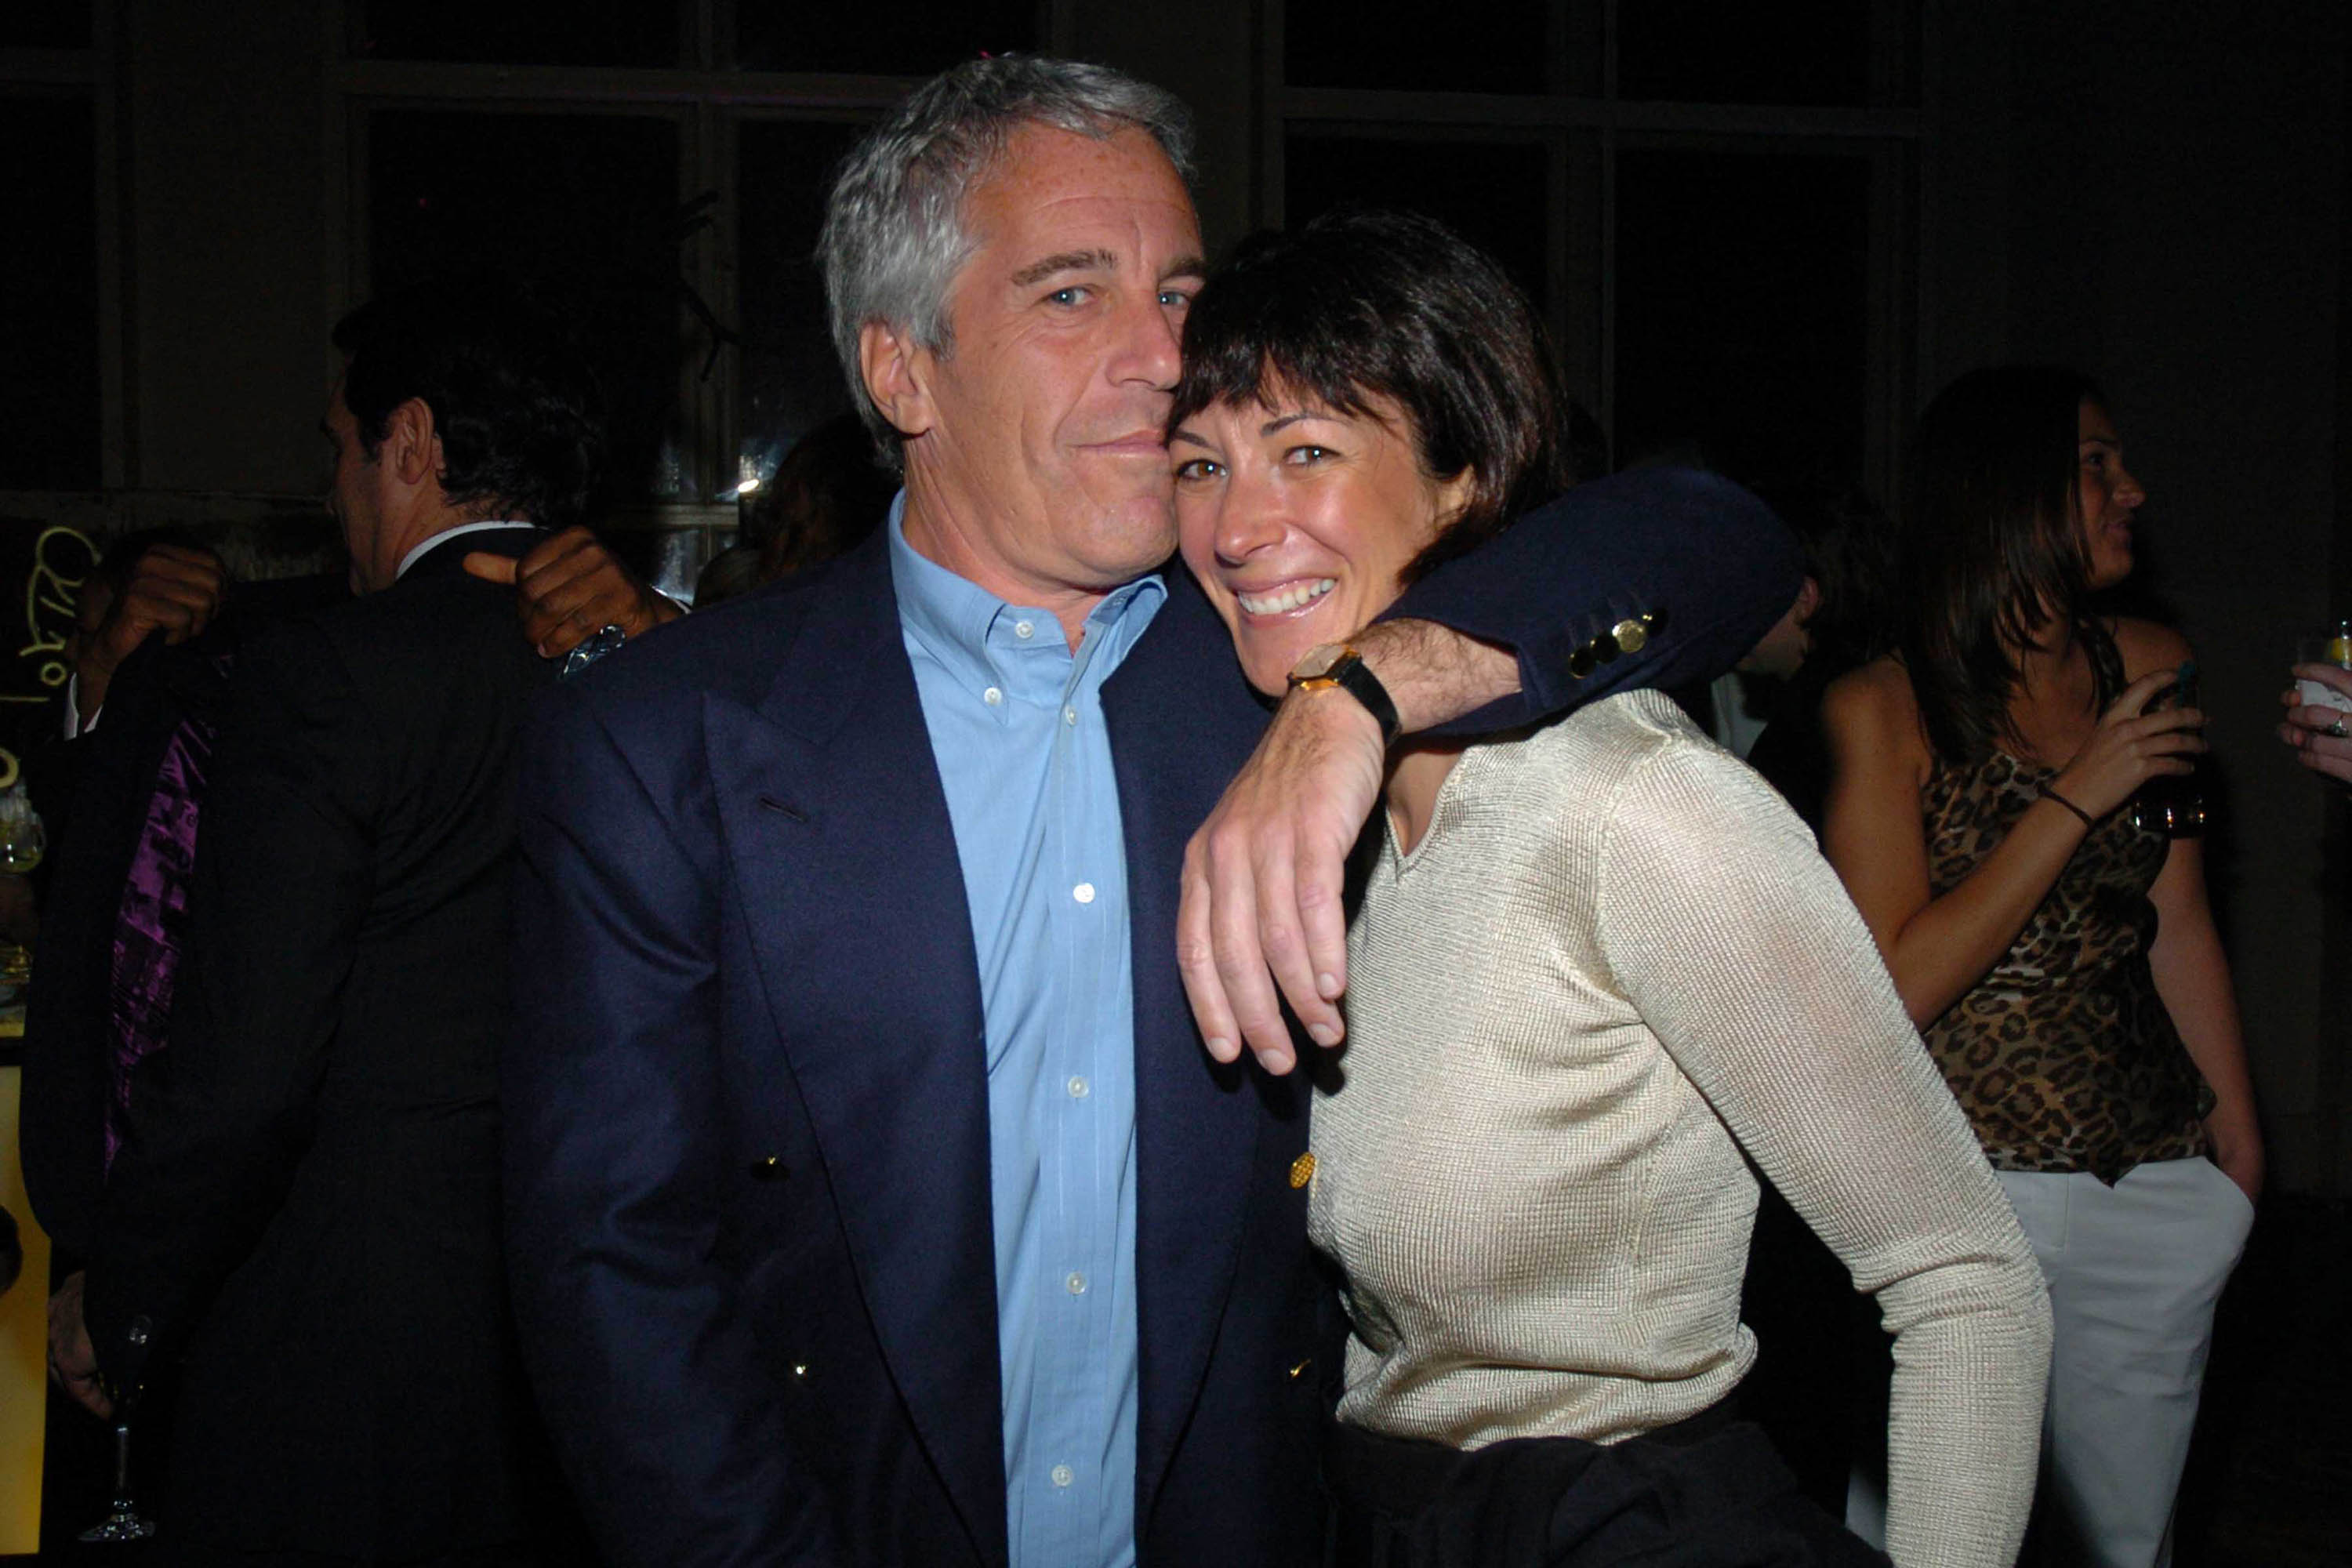 Ghislaine Maxwell, longtime Jeffrey Epstein associate, arrested for recruiting and abusing girls in sex-trafficking ring